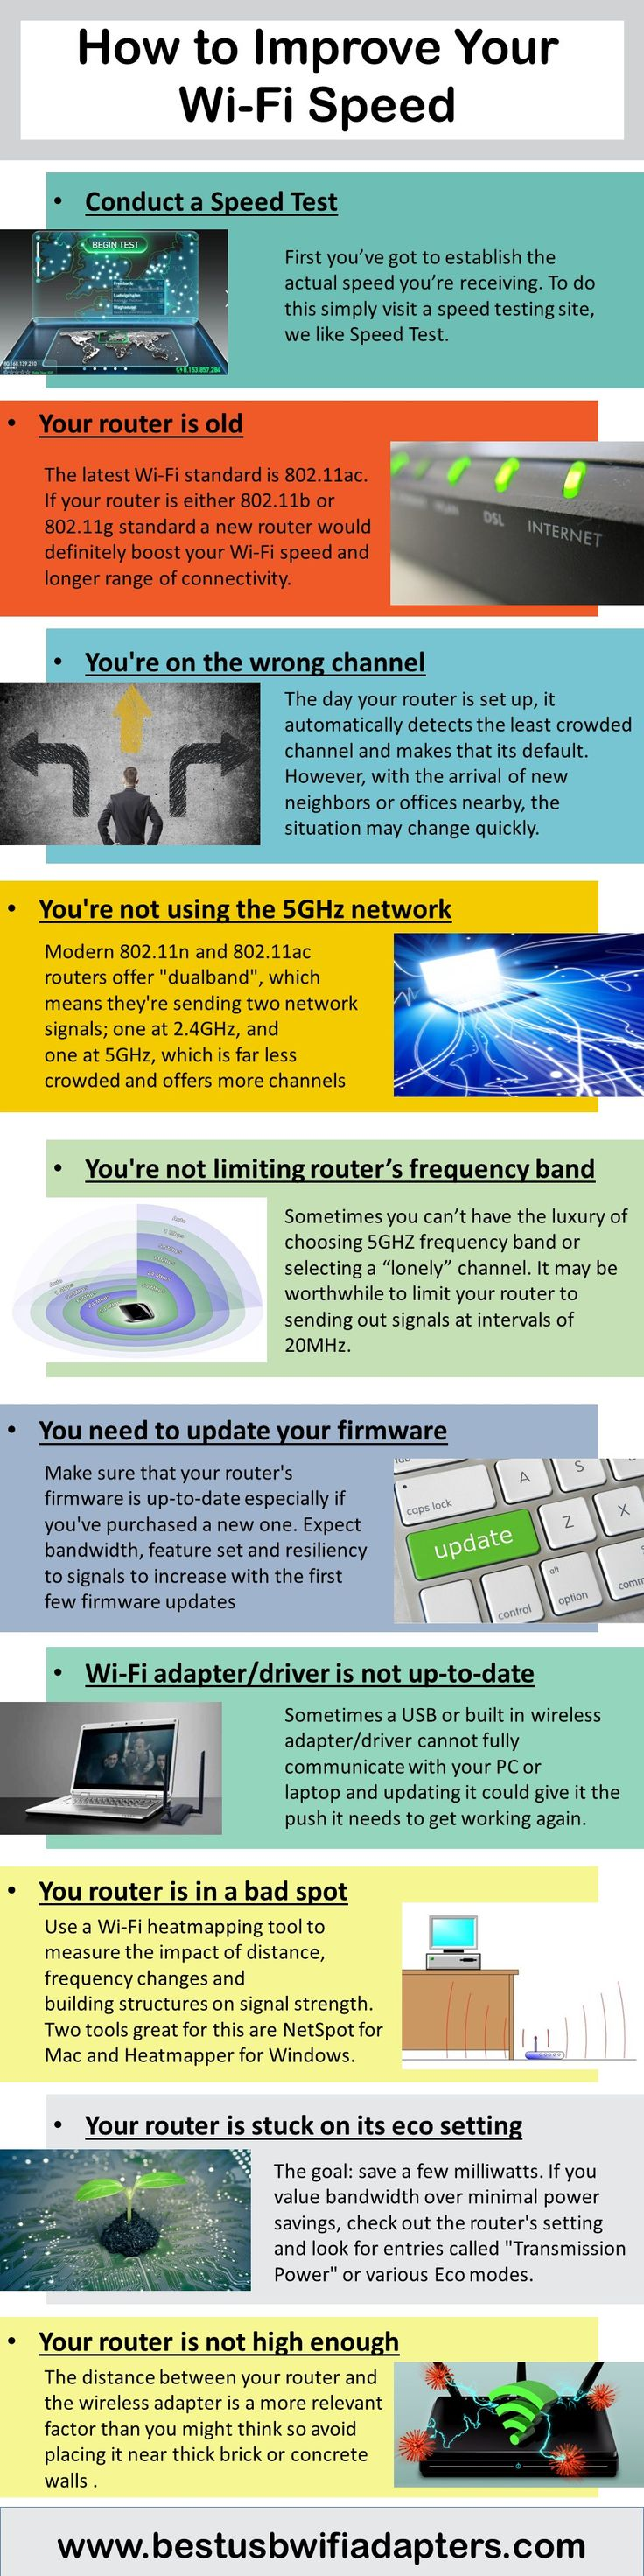 Slow wifi signals may panic you sometimes. In this infographic, I have shown you ten steps for improving wifi signals. Follow these steps to speed up your internet and boost #wifi signal strength. http://www.bestusbwifiadapters.com/